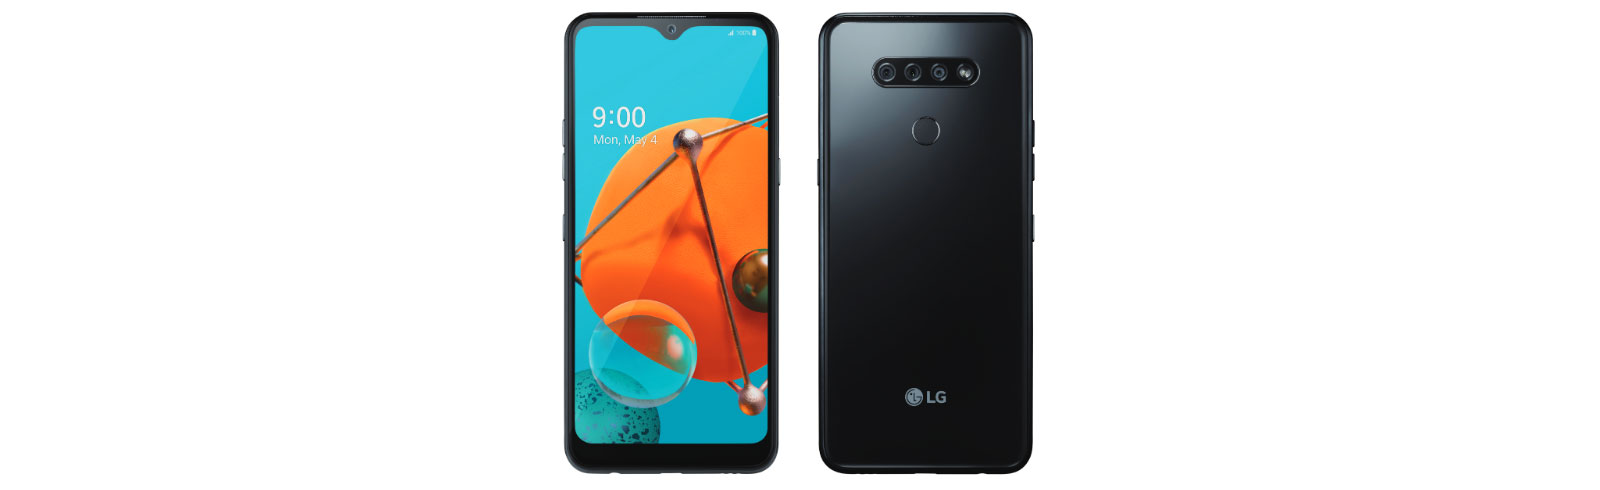 LG K51 is available in the US via Boost Mobile, costs $90